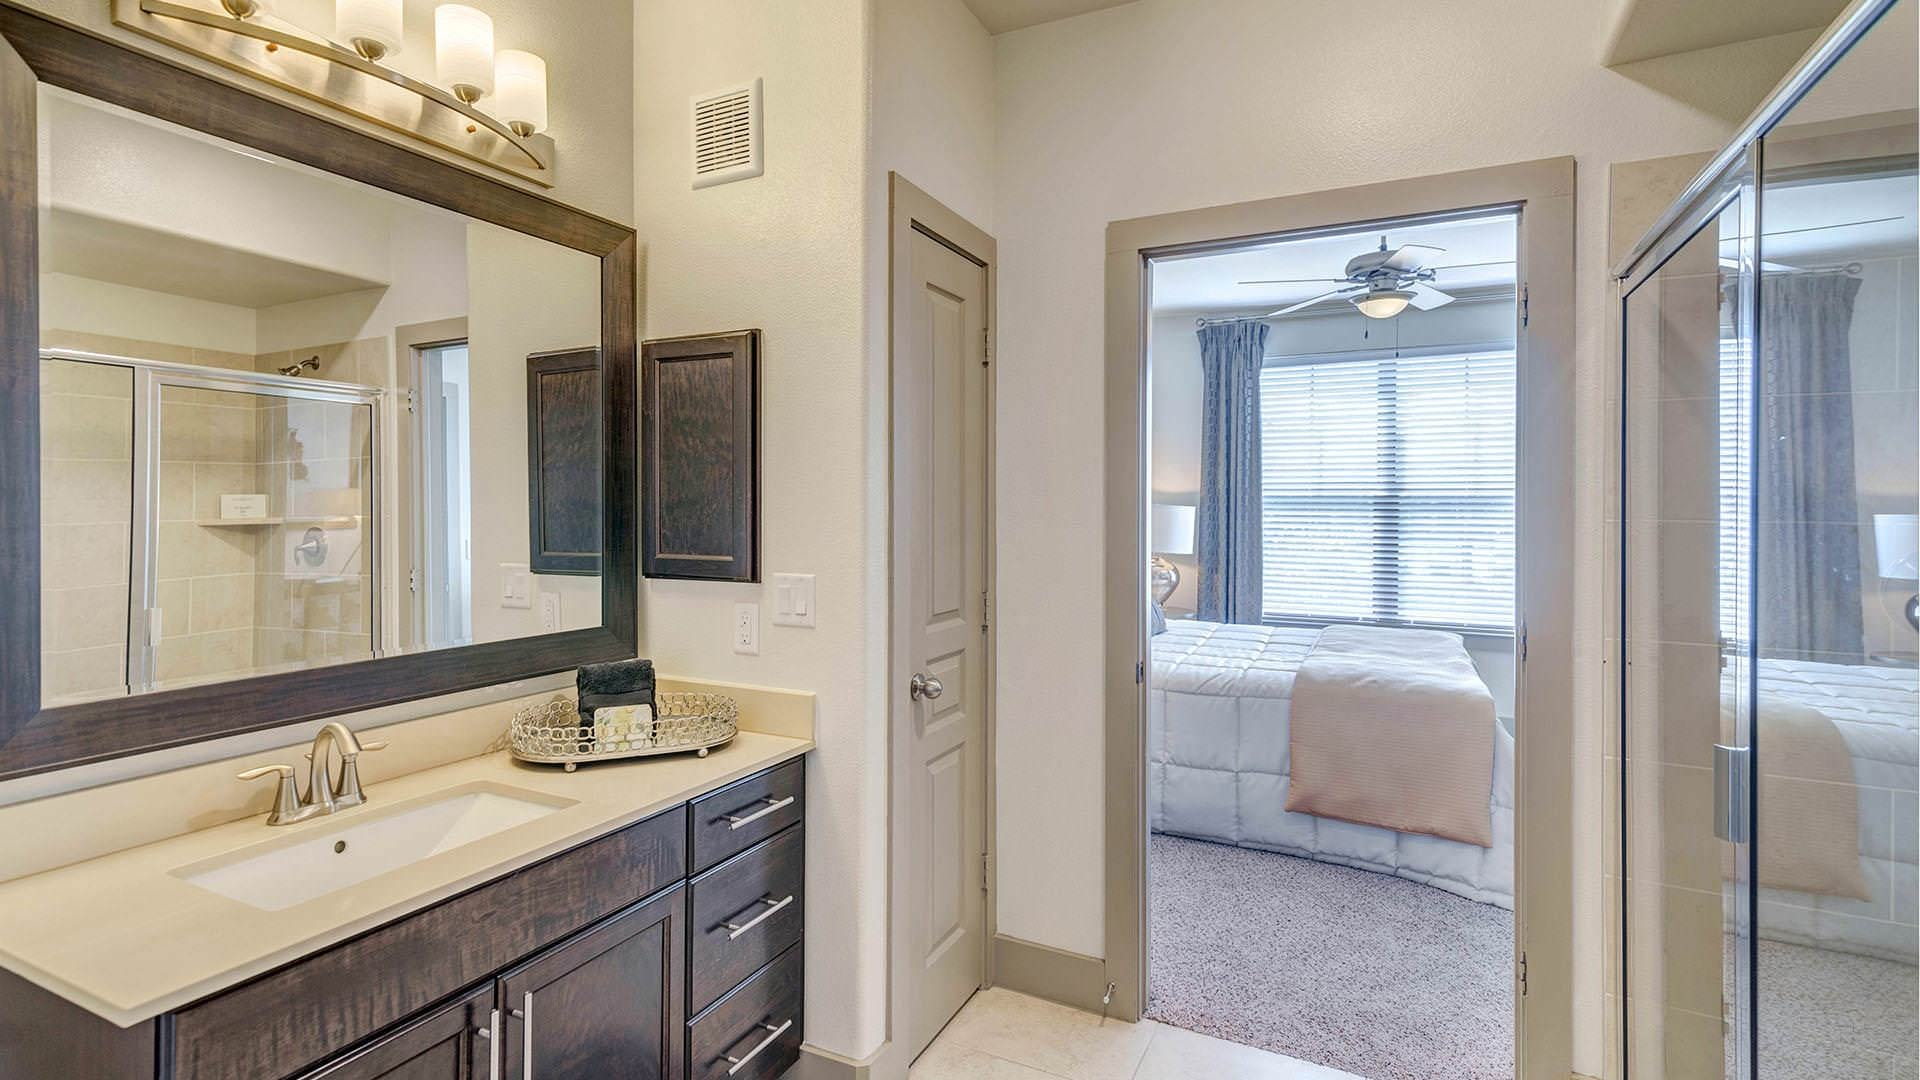 glass enclosed, walk-in shower in well lit bathroom